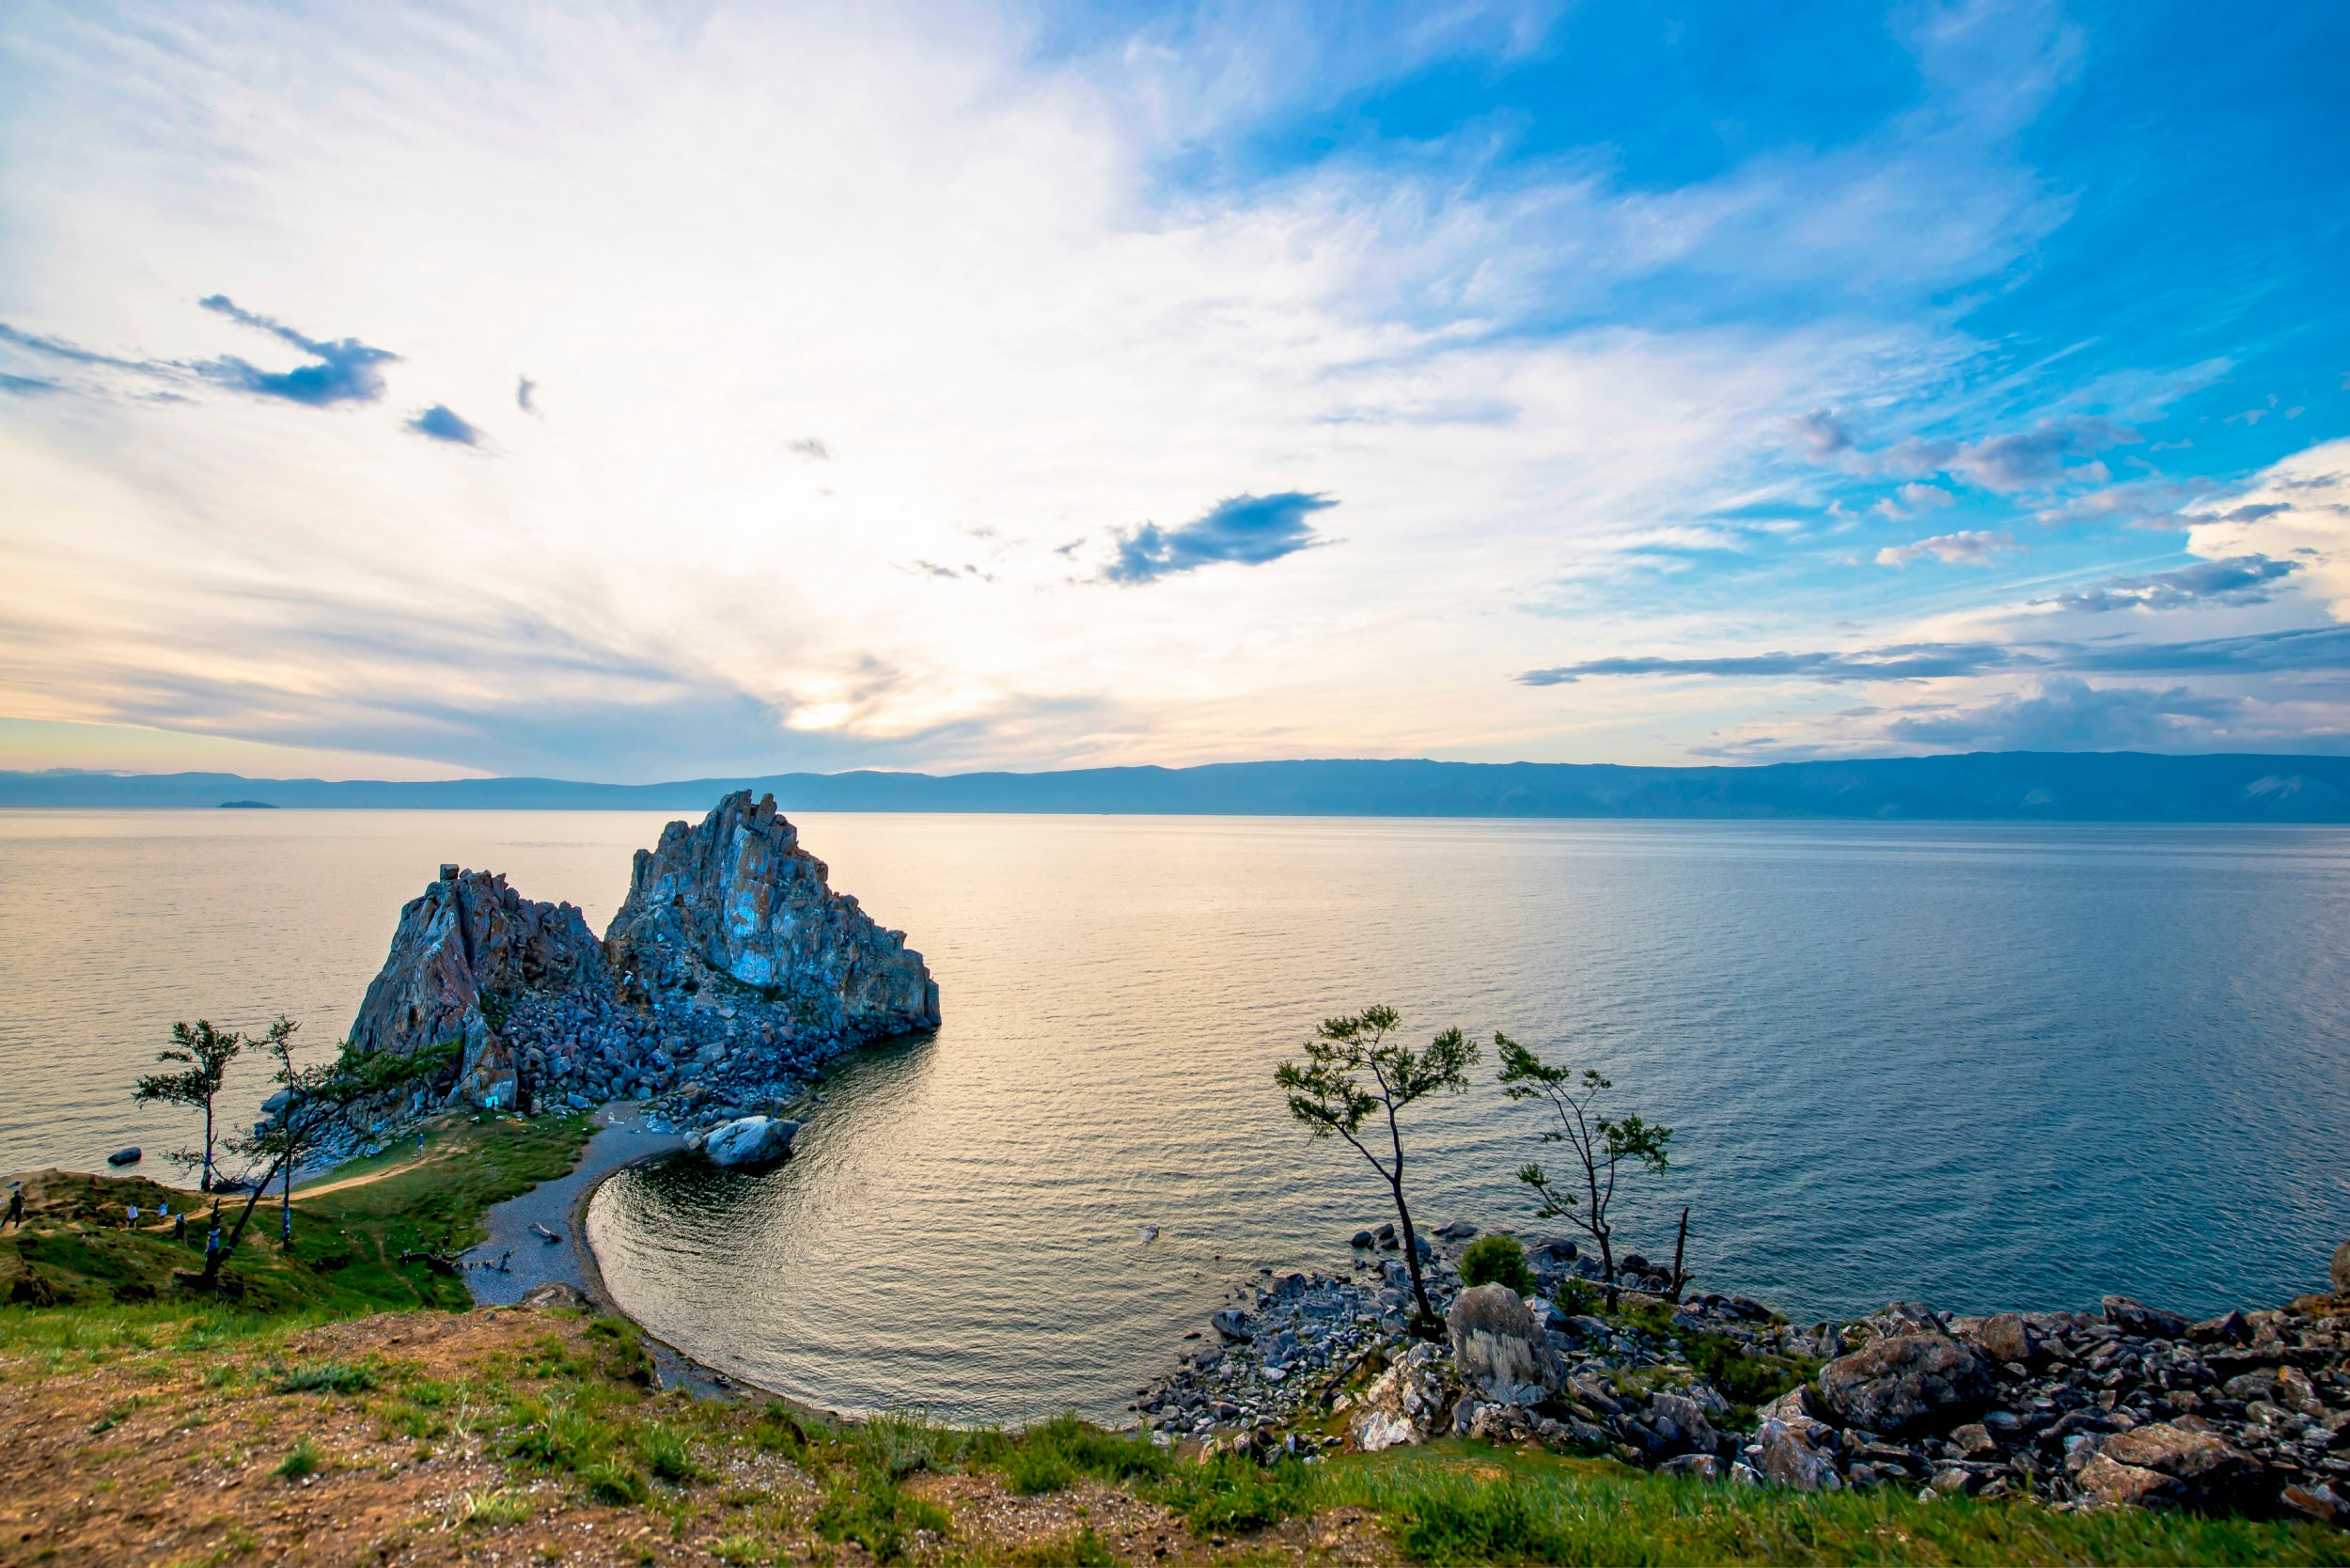 Olkhon Island, Lake Baikal, Russia: A natural wonder resisting the threats of development